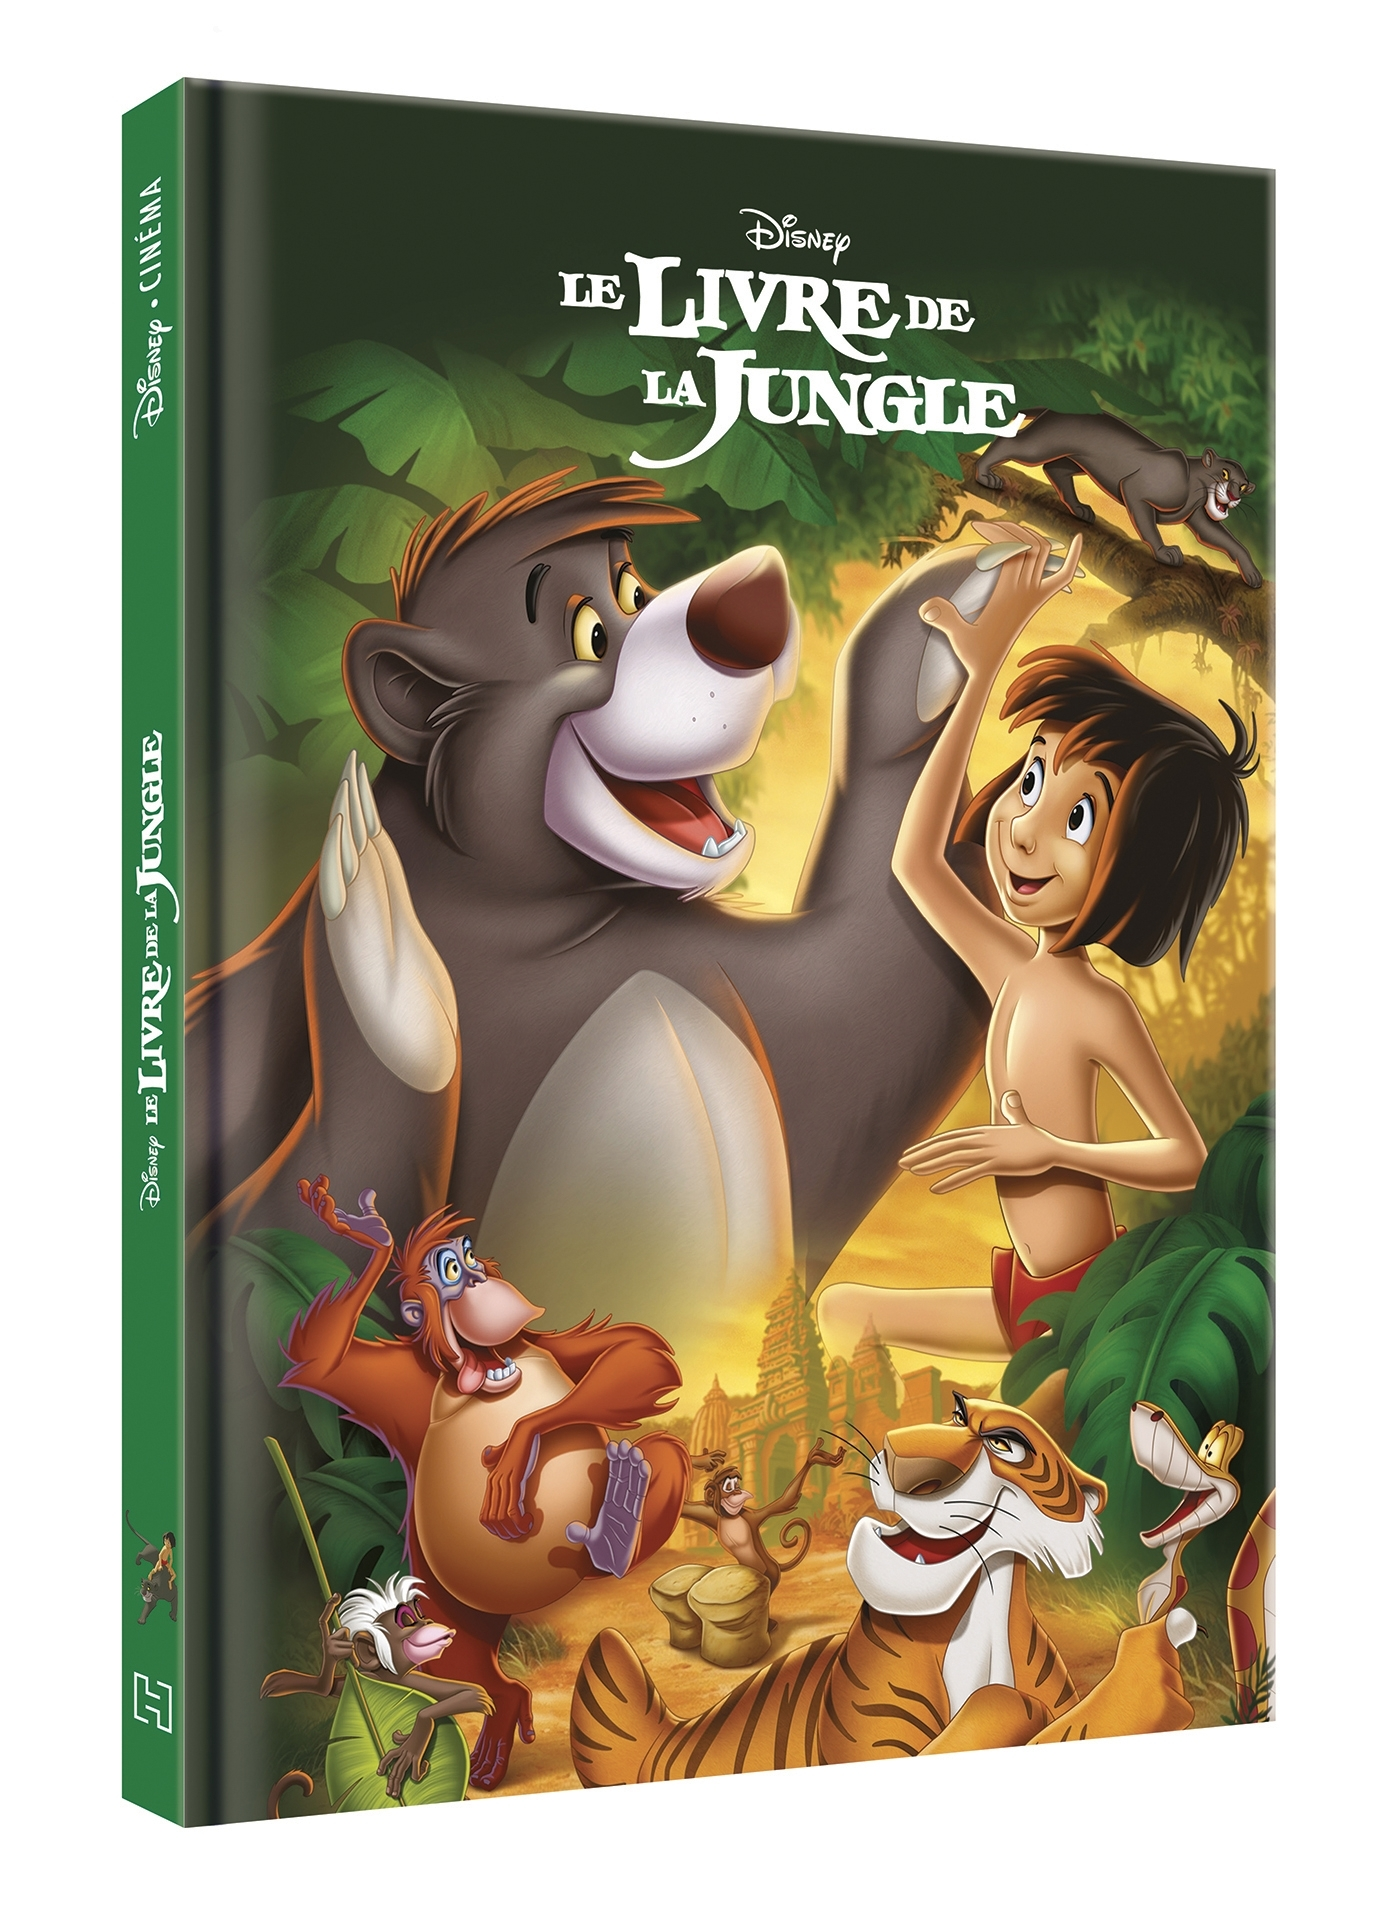 LE LIVRE DE LA JUNGLE, DISNEY CINEMA